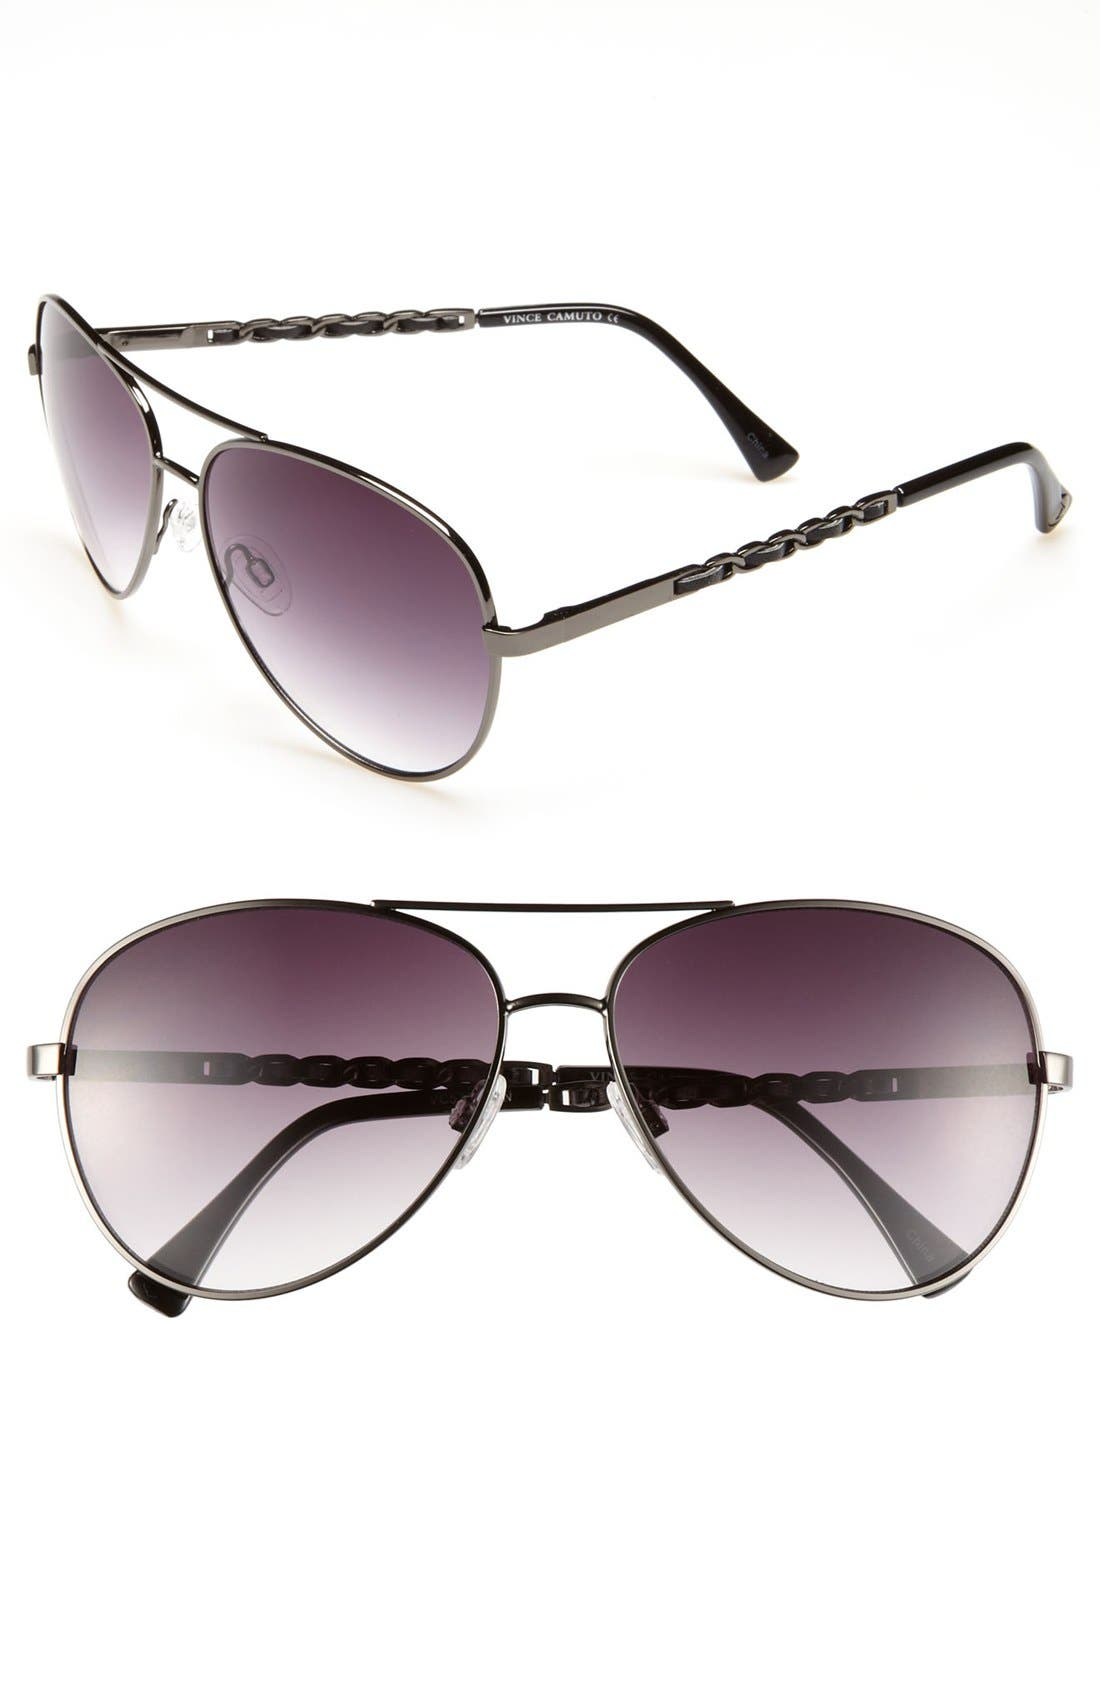 Alternate Image 1 Selected - Vince Camuto Metal & Faux Leather 60mm Aviator Sunglasses